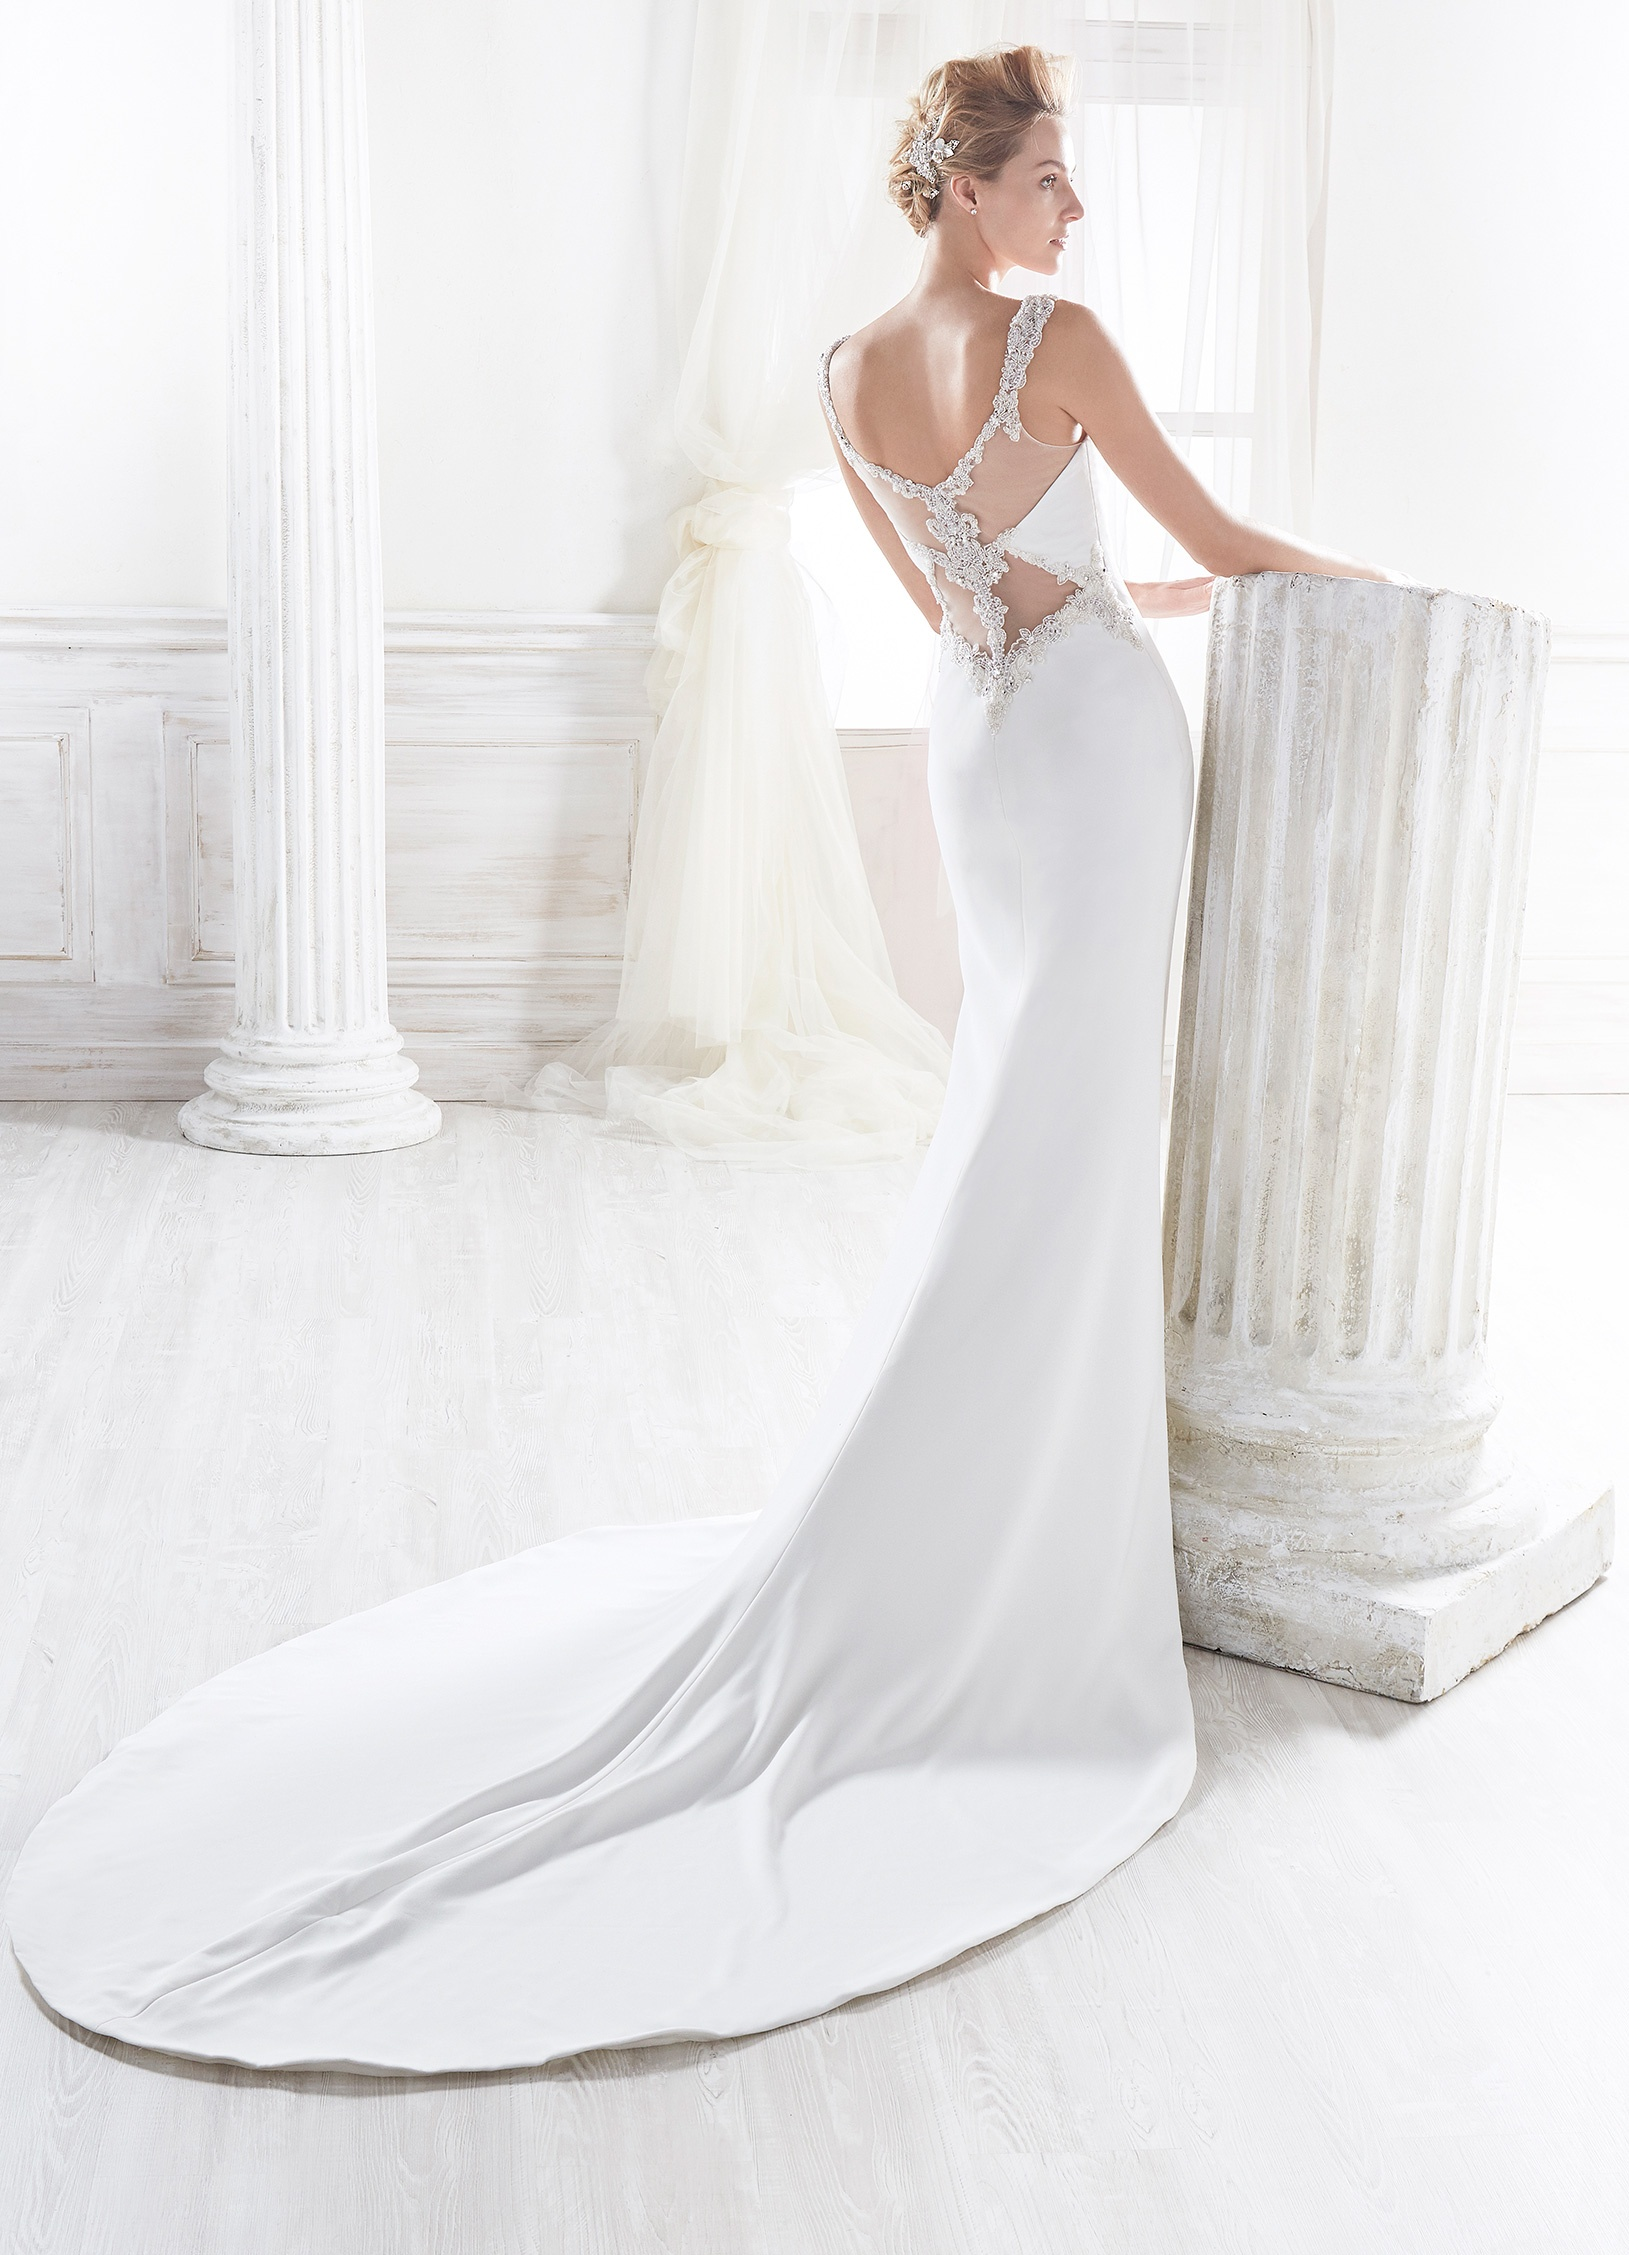 Ask the Experts: What are the Big Bridal Trends for 2018/2019 ...